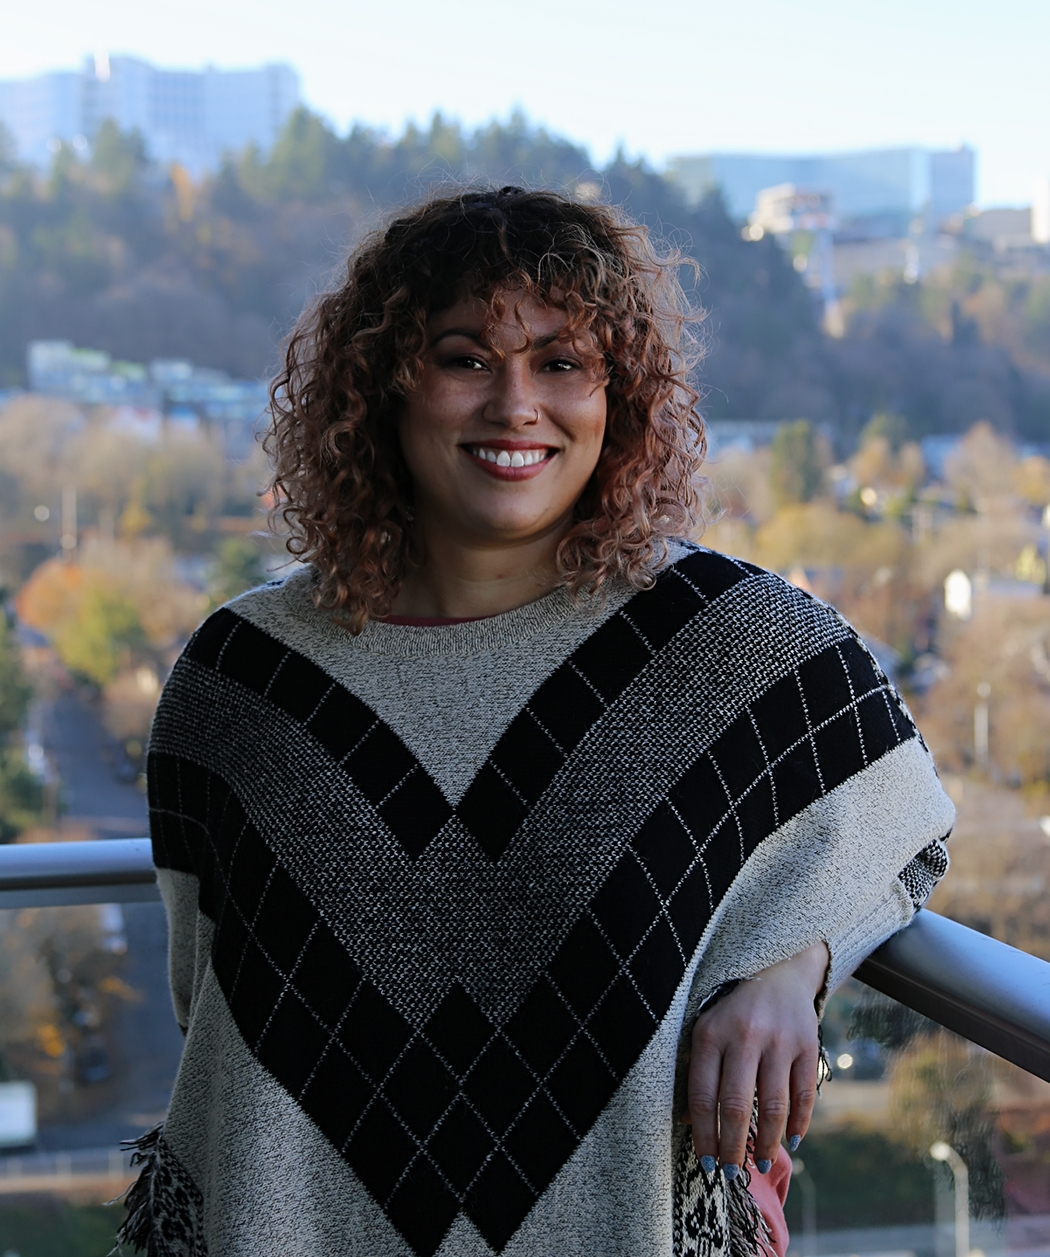 Photo of our Member Yeruwelle in front of a landscape of trees and city buildings. She is wearing a patterned black and gray sweater and smiling.